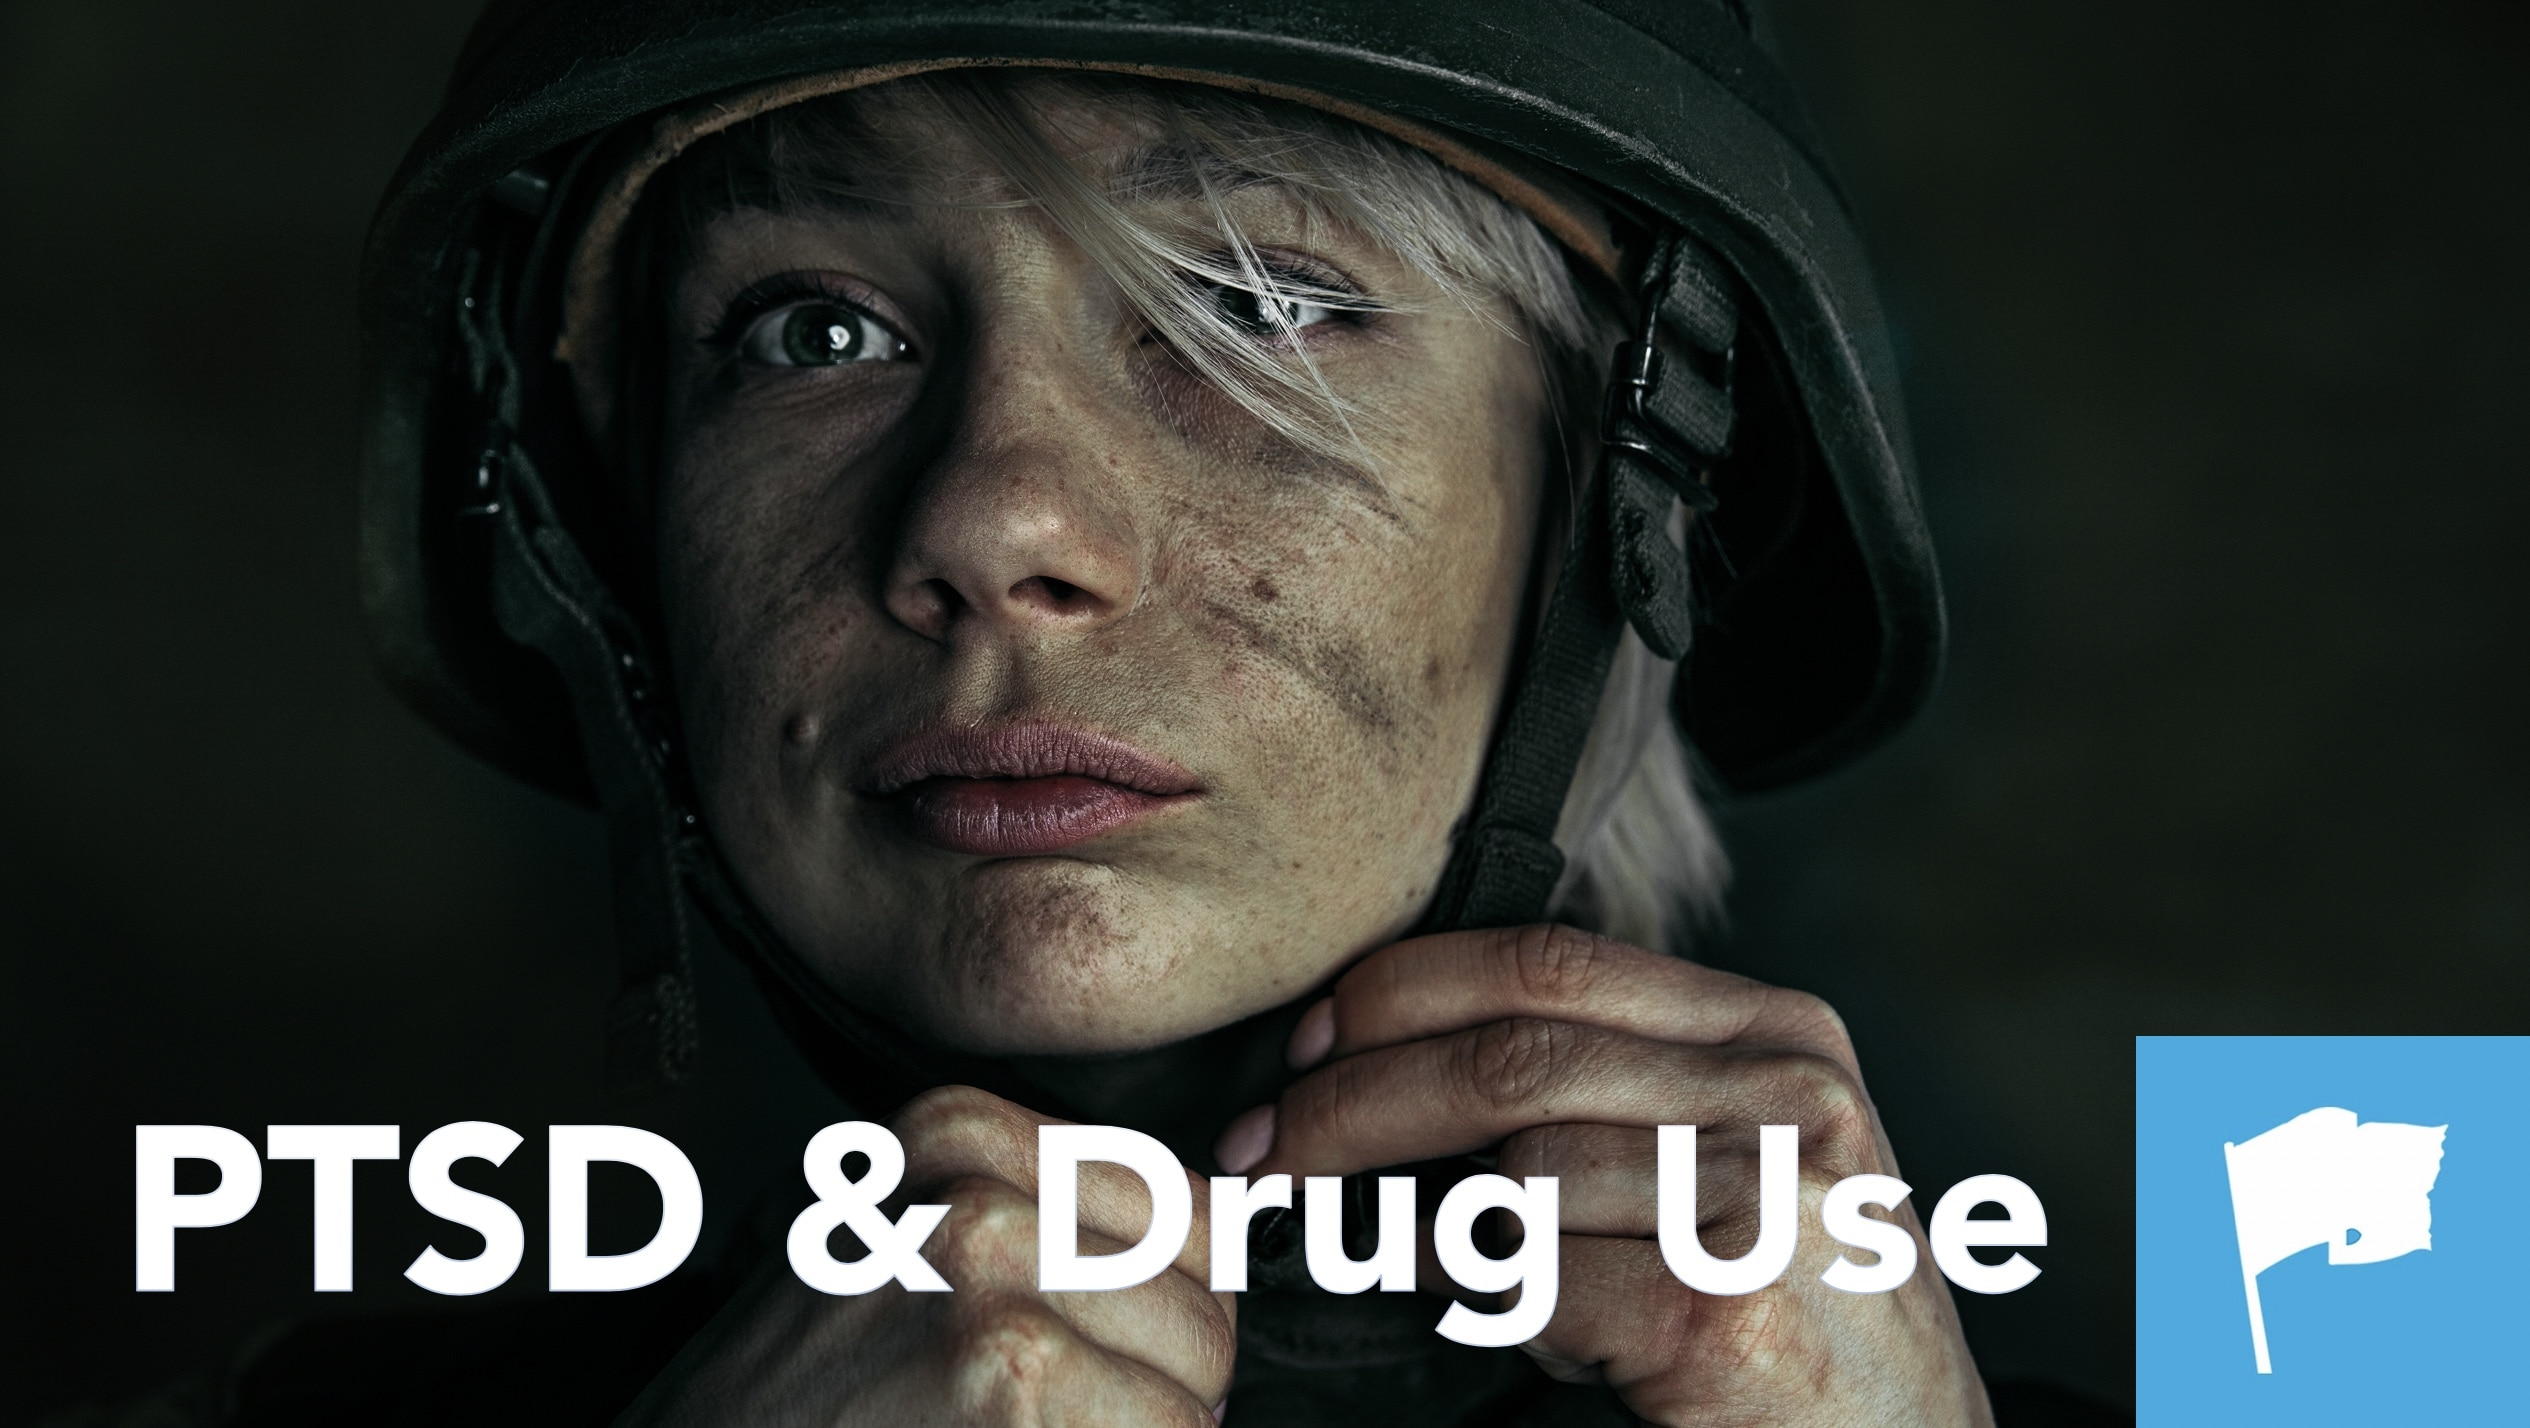 PTSD-drug-use-military-police-firefighters-healthcare-workers-addiction-treatment-mental-health-Houston-TX